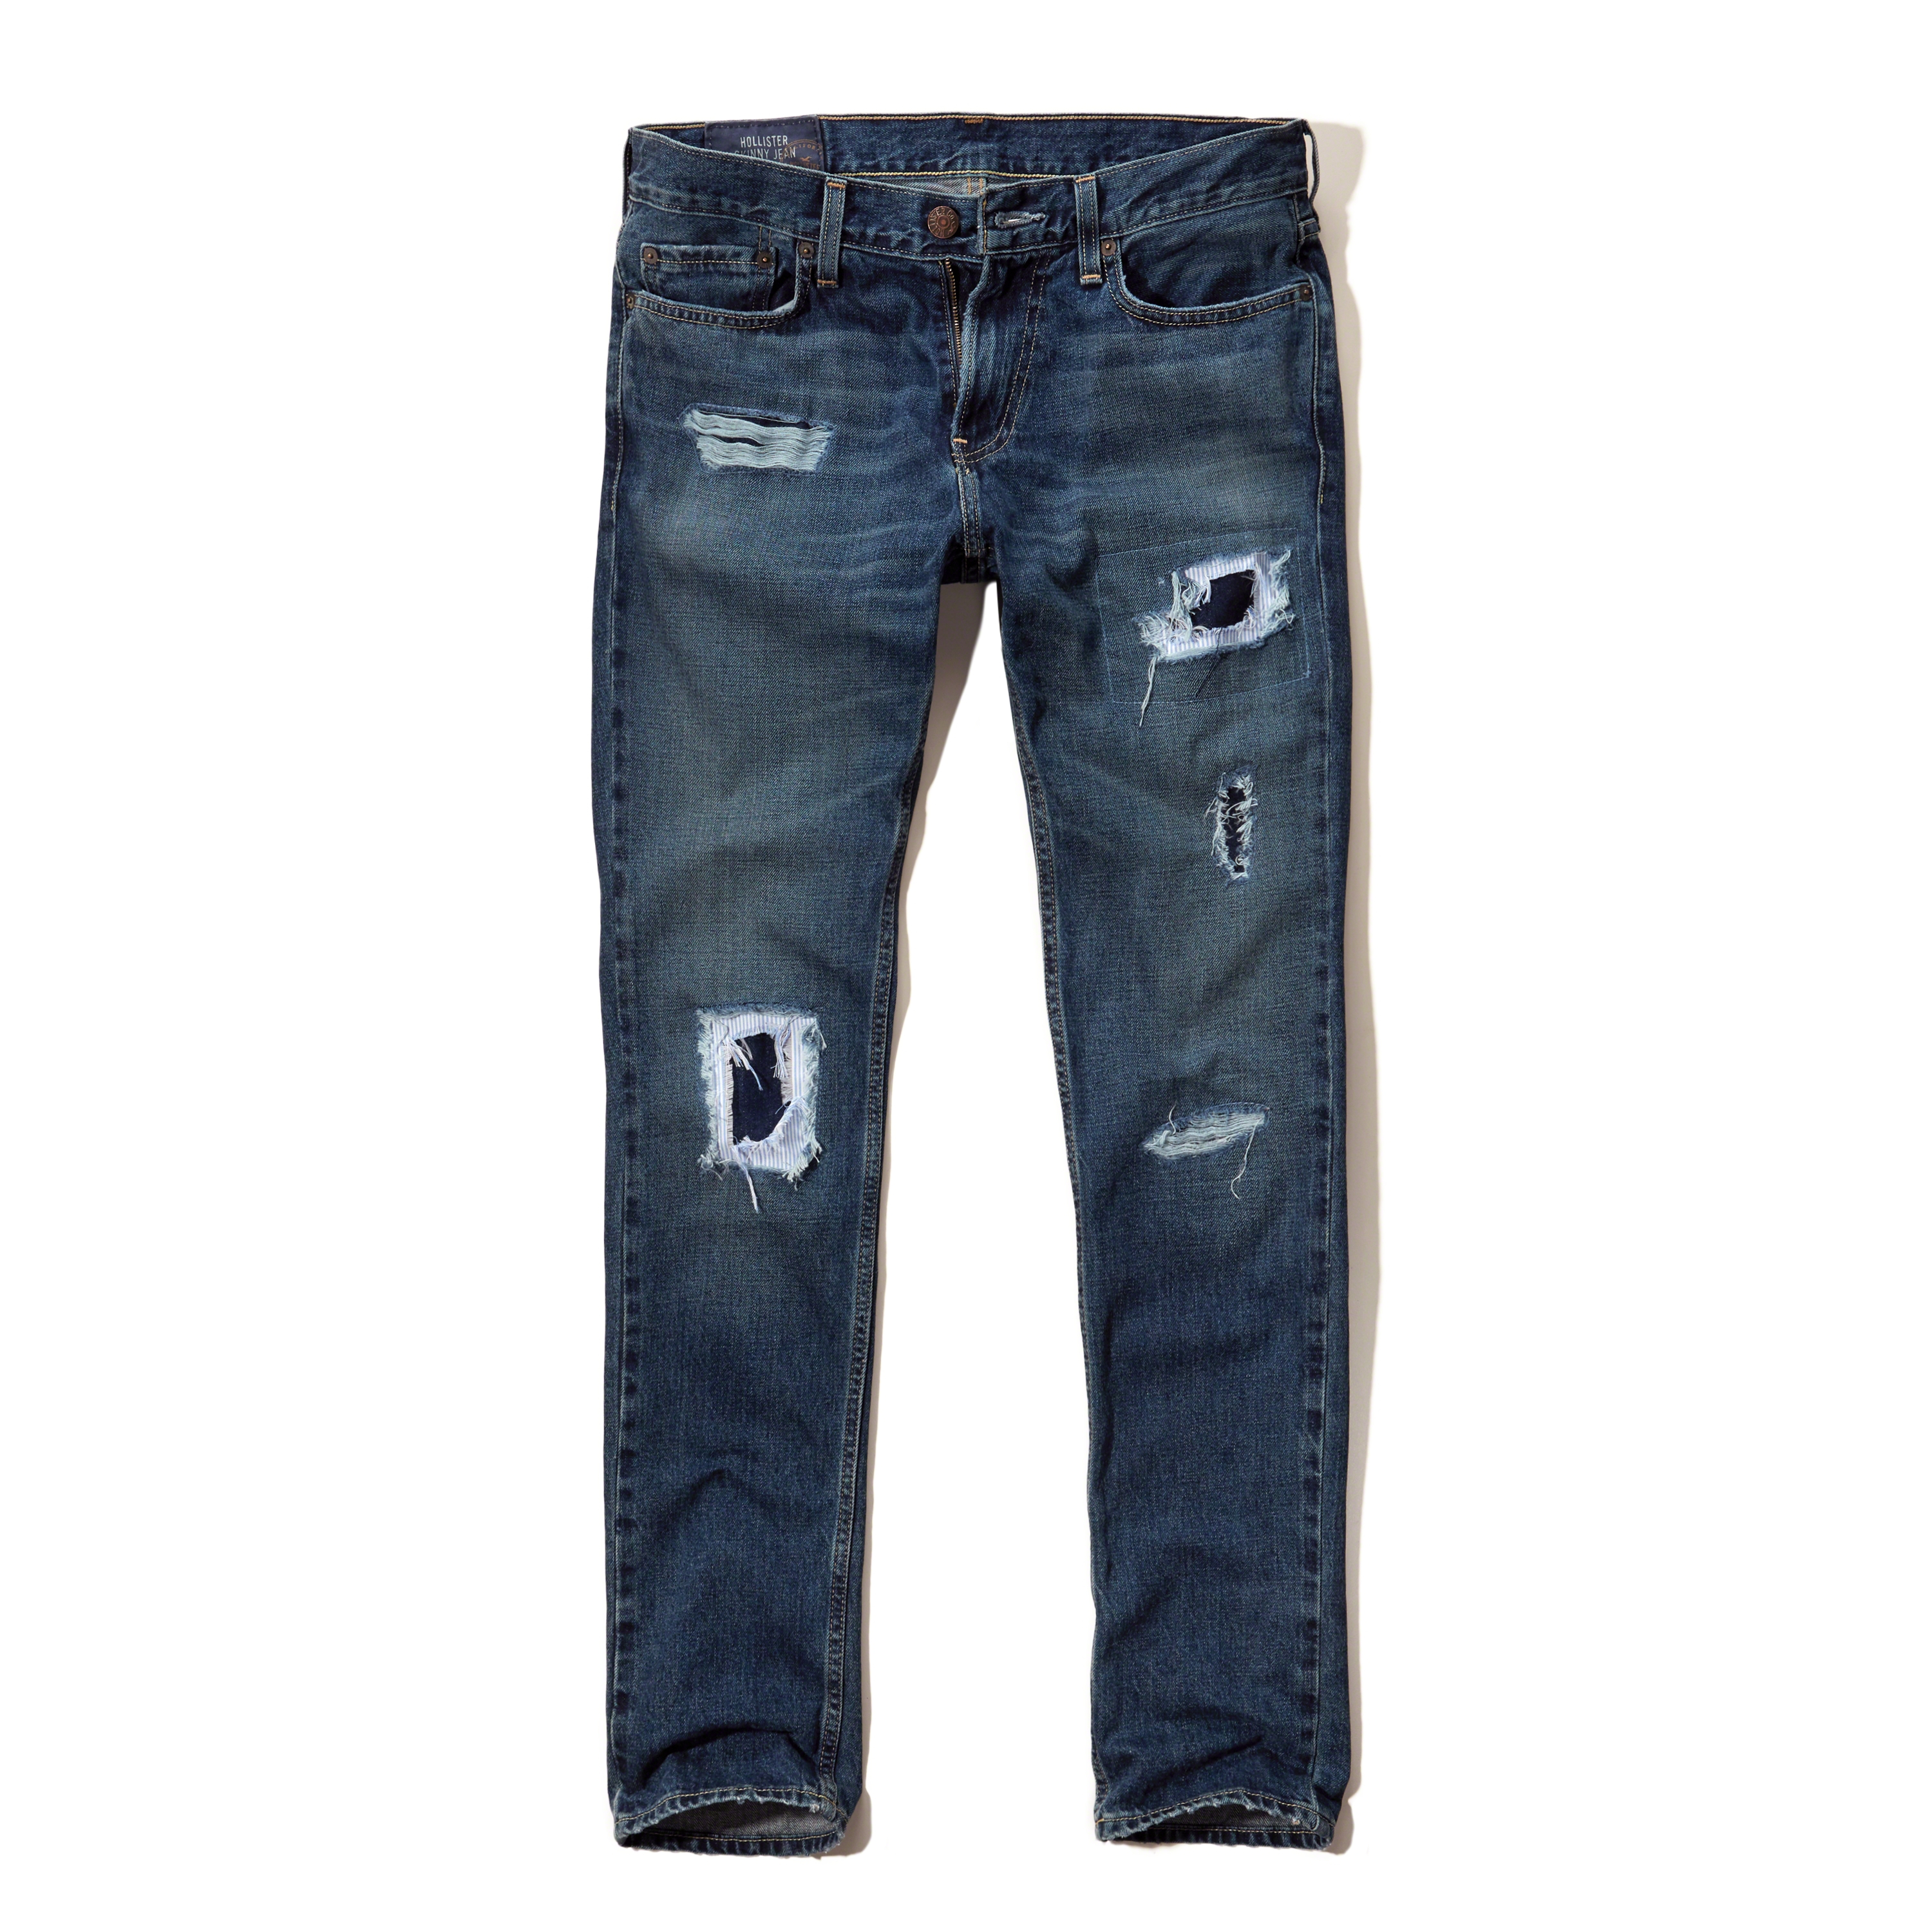 hollister dark jeans for men - photo #24